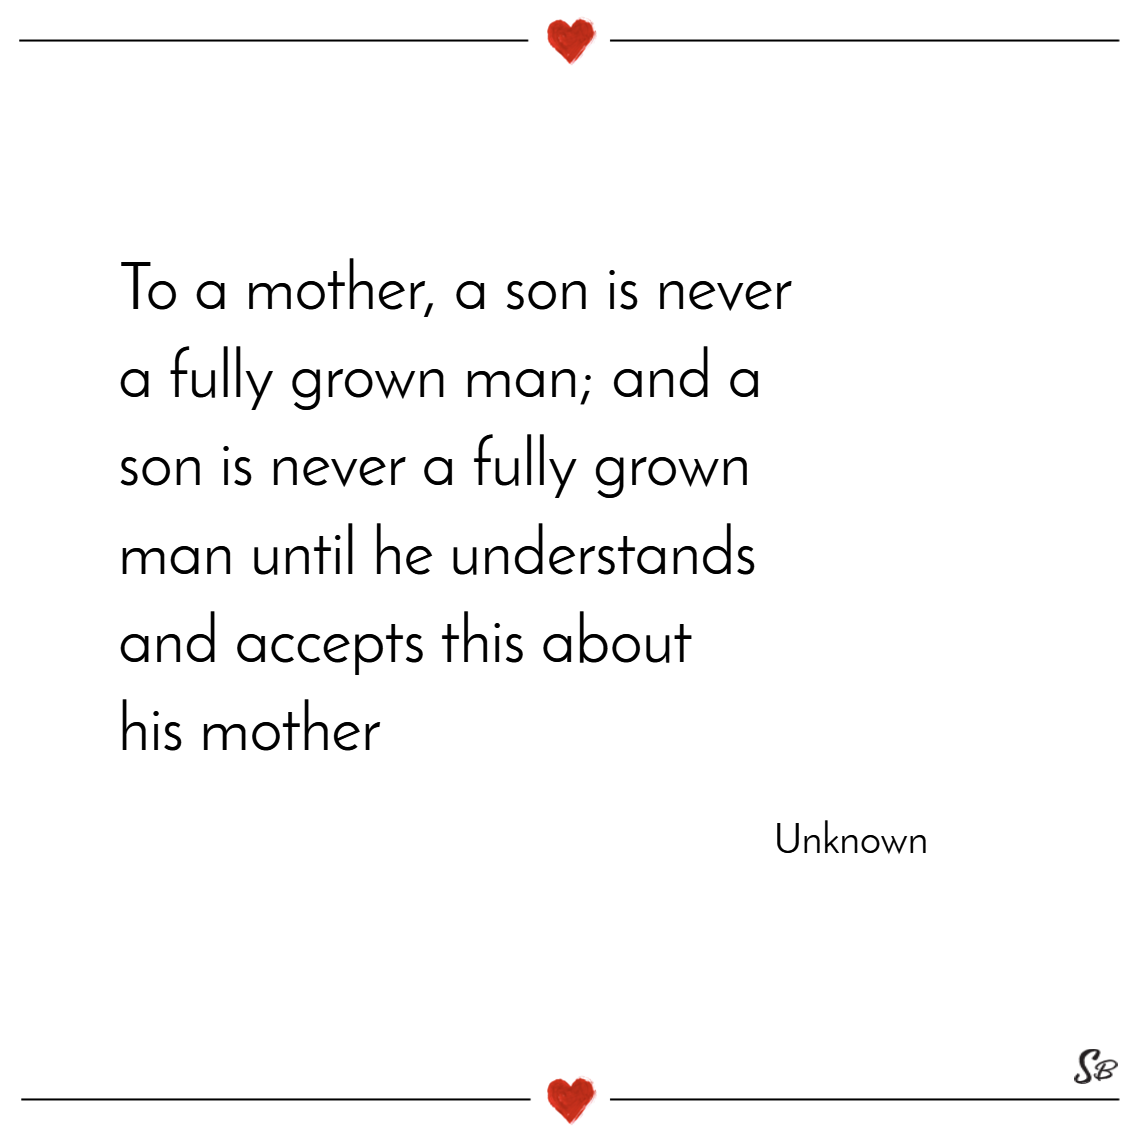 To a mother, a son is never a fully grown man; and a son is never a fully grown man until he understands and accepts this about his mother. – unknown